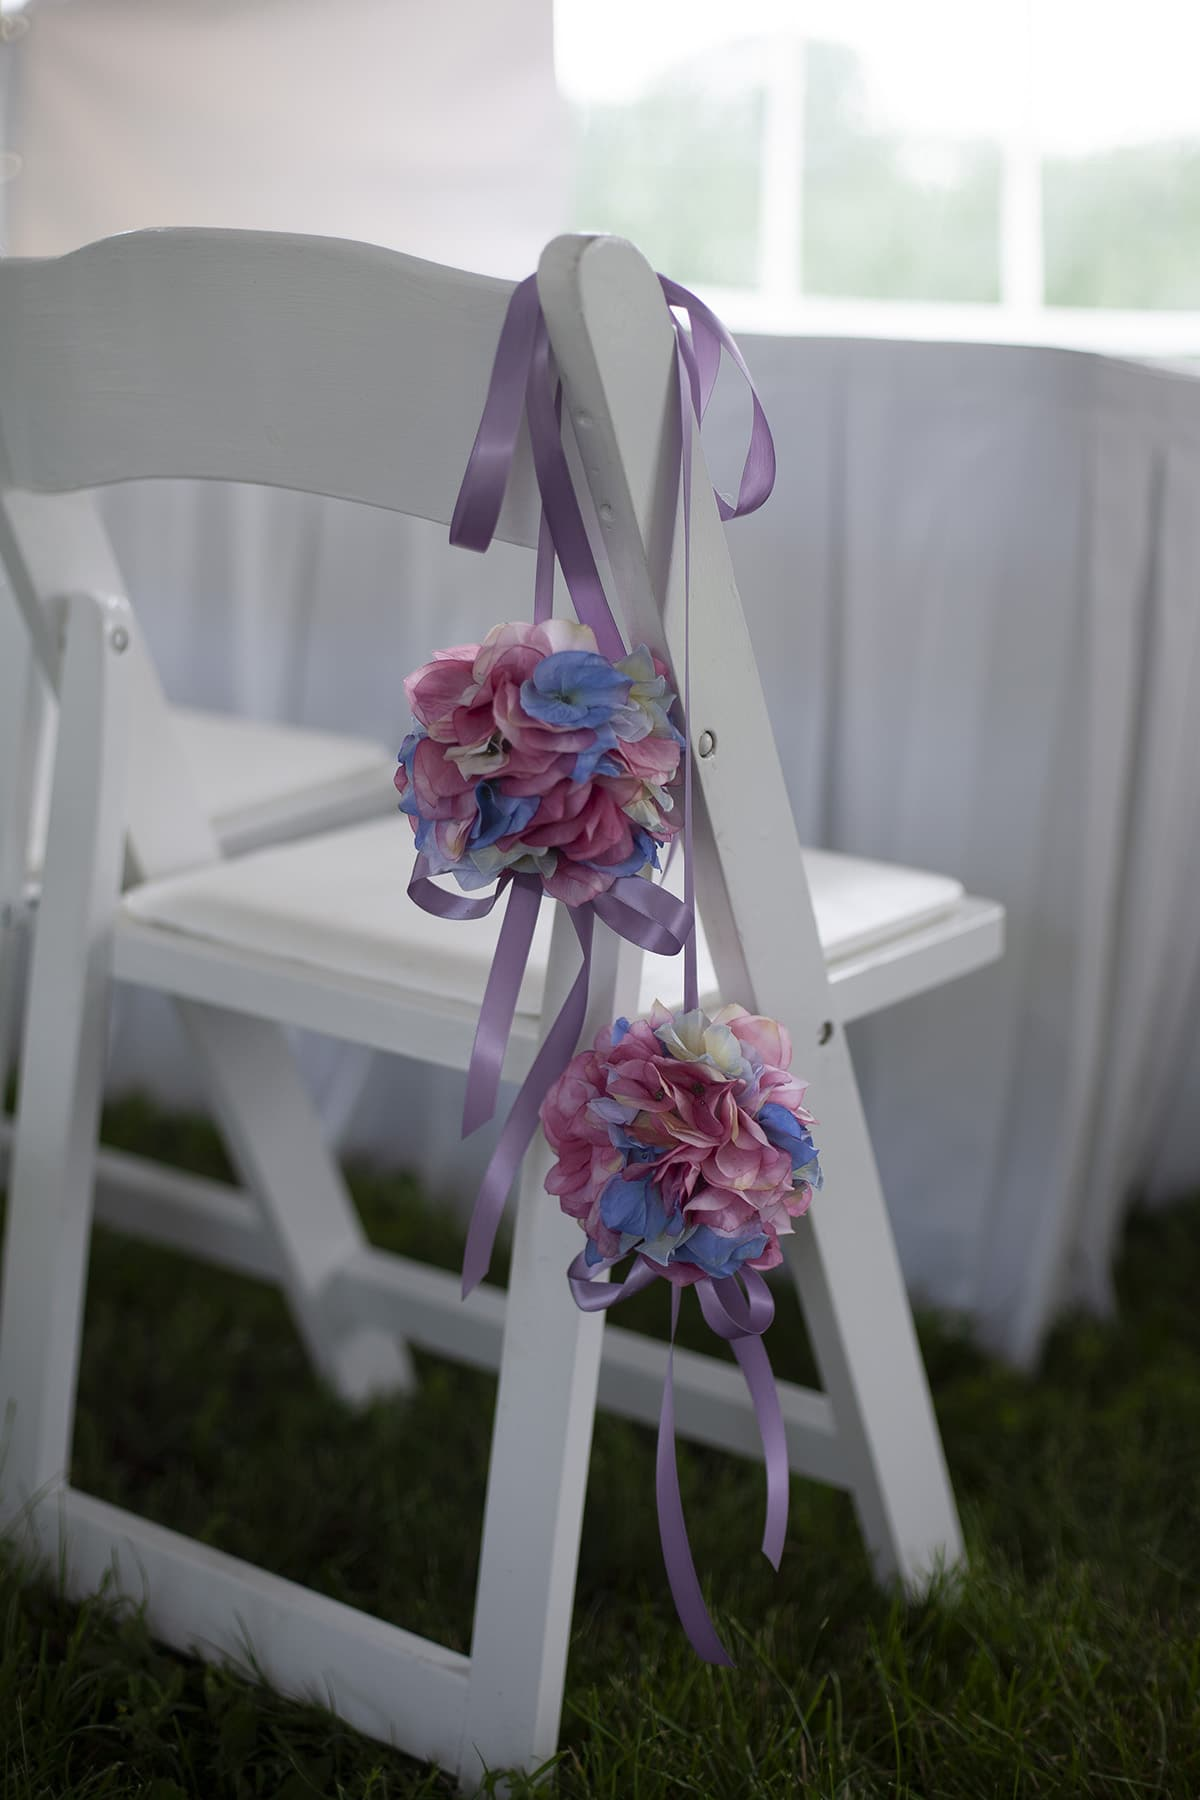 Pastel coloured pomanders draped over a white fold out ceremony chair.